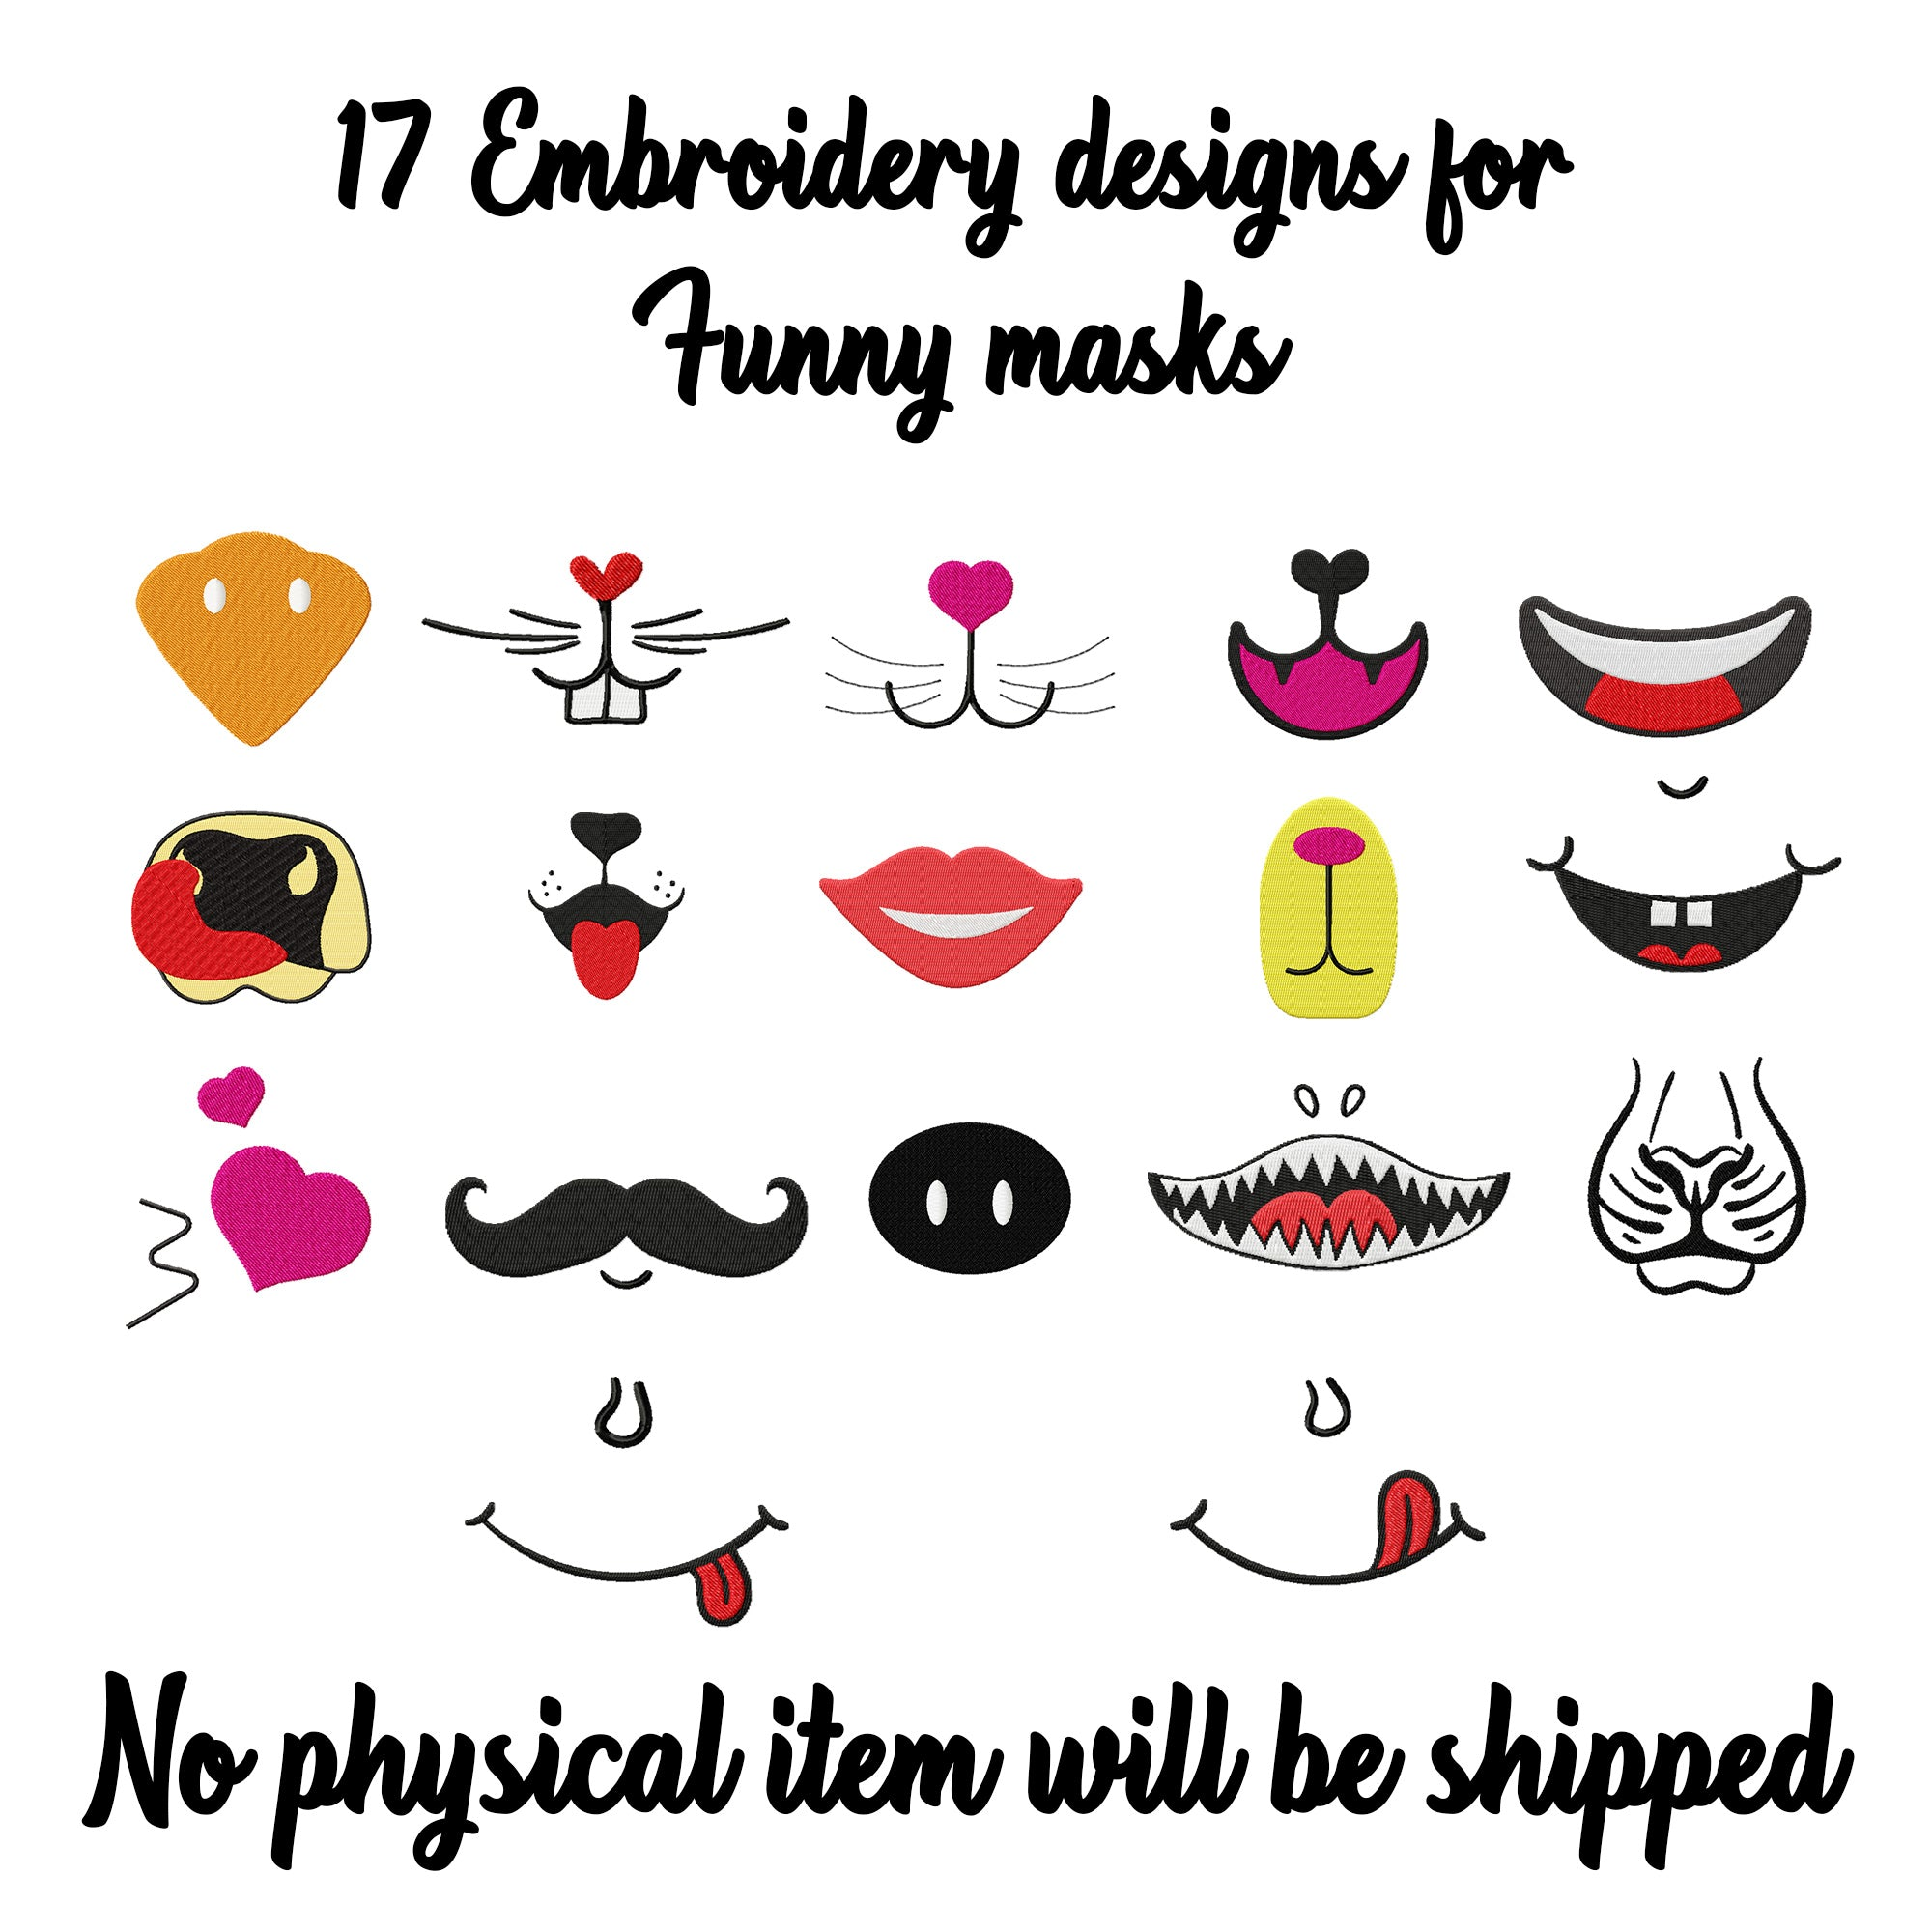 Mouth Mask Sewing Pattern Cotton Mask Embroidery Designs Surgical Ma Illustrator Guru